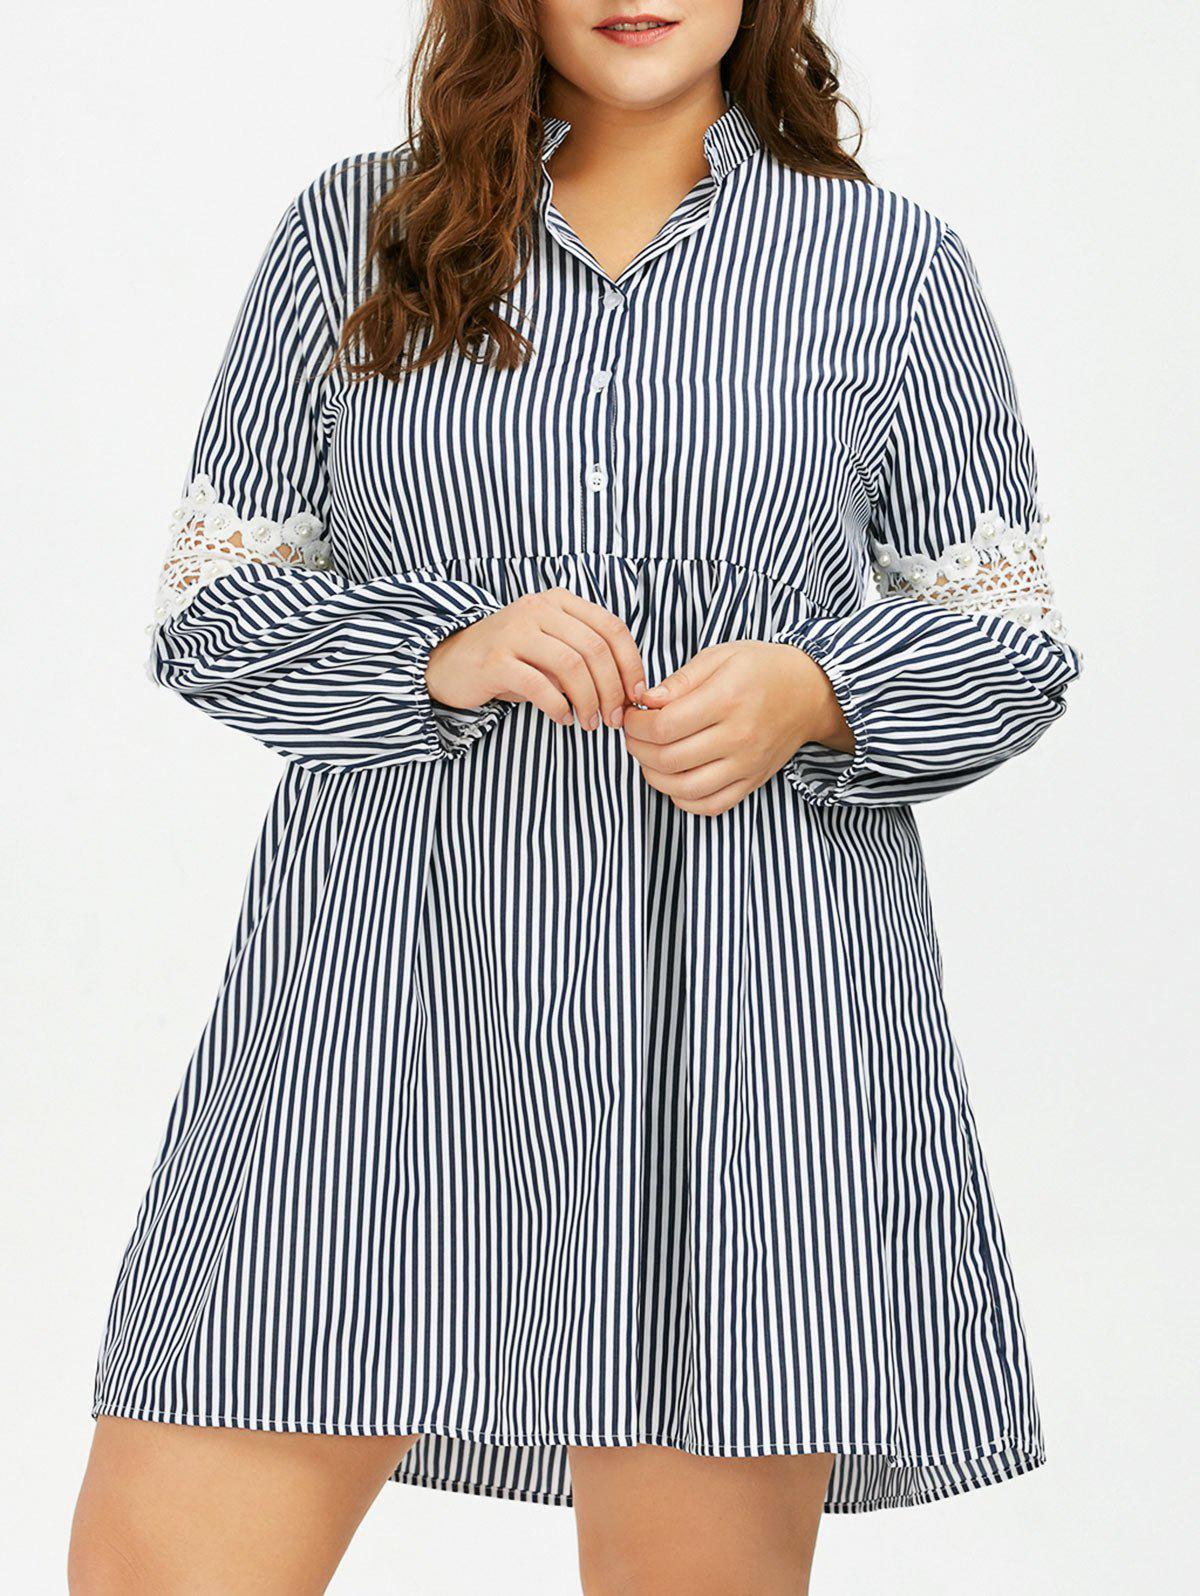 9% OFF] Long Sleeve Plus Size Striped Smock Casual Shirt Dress | Rosegal